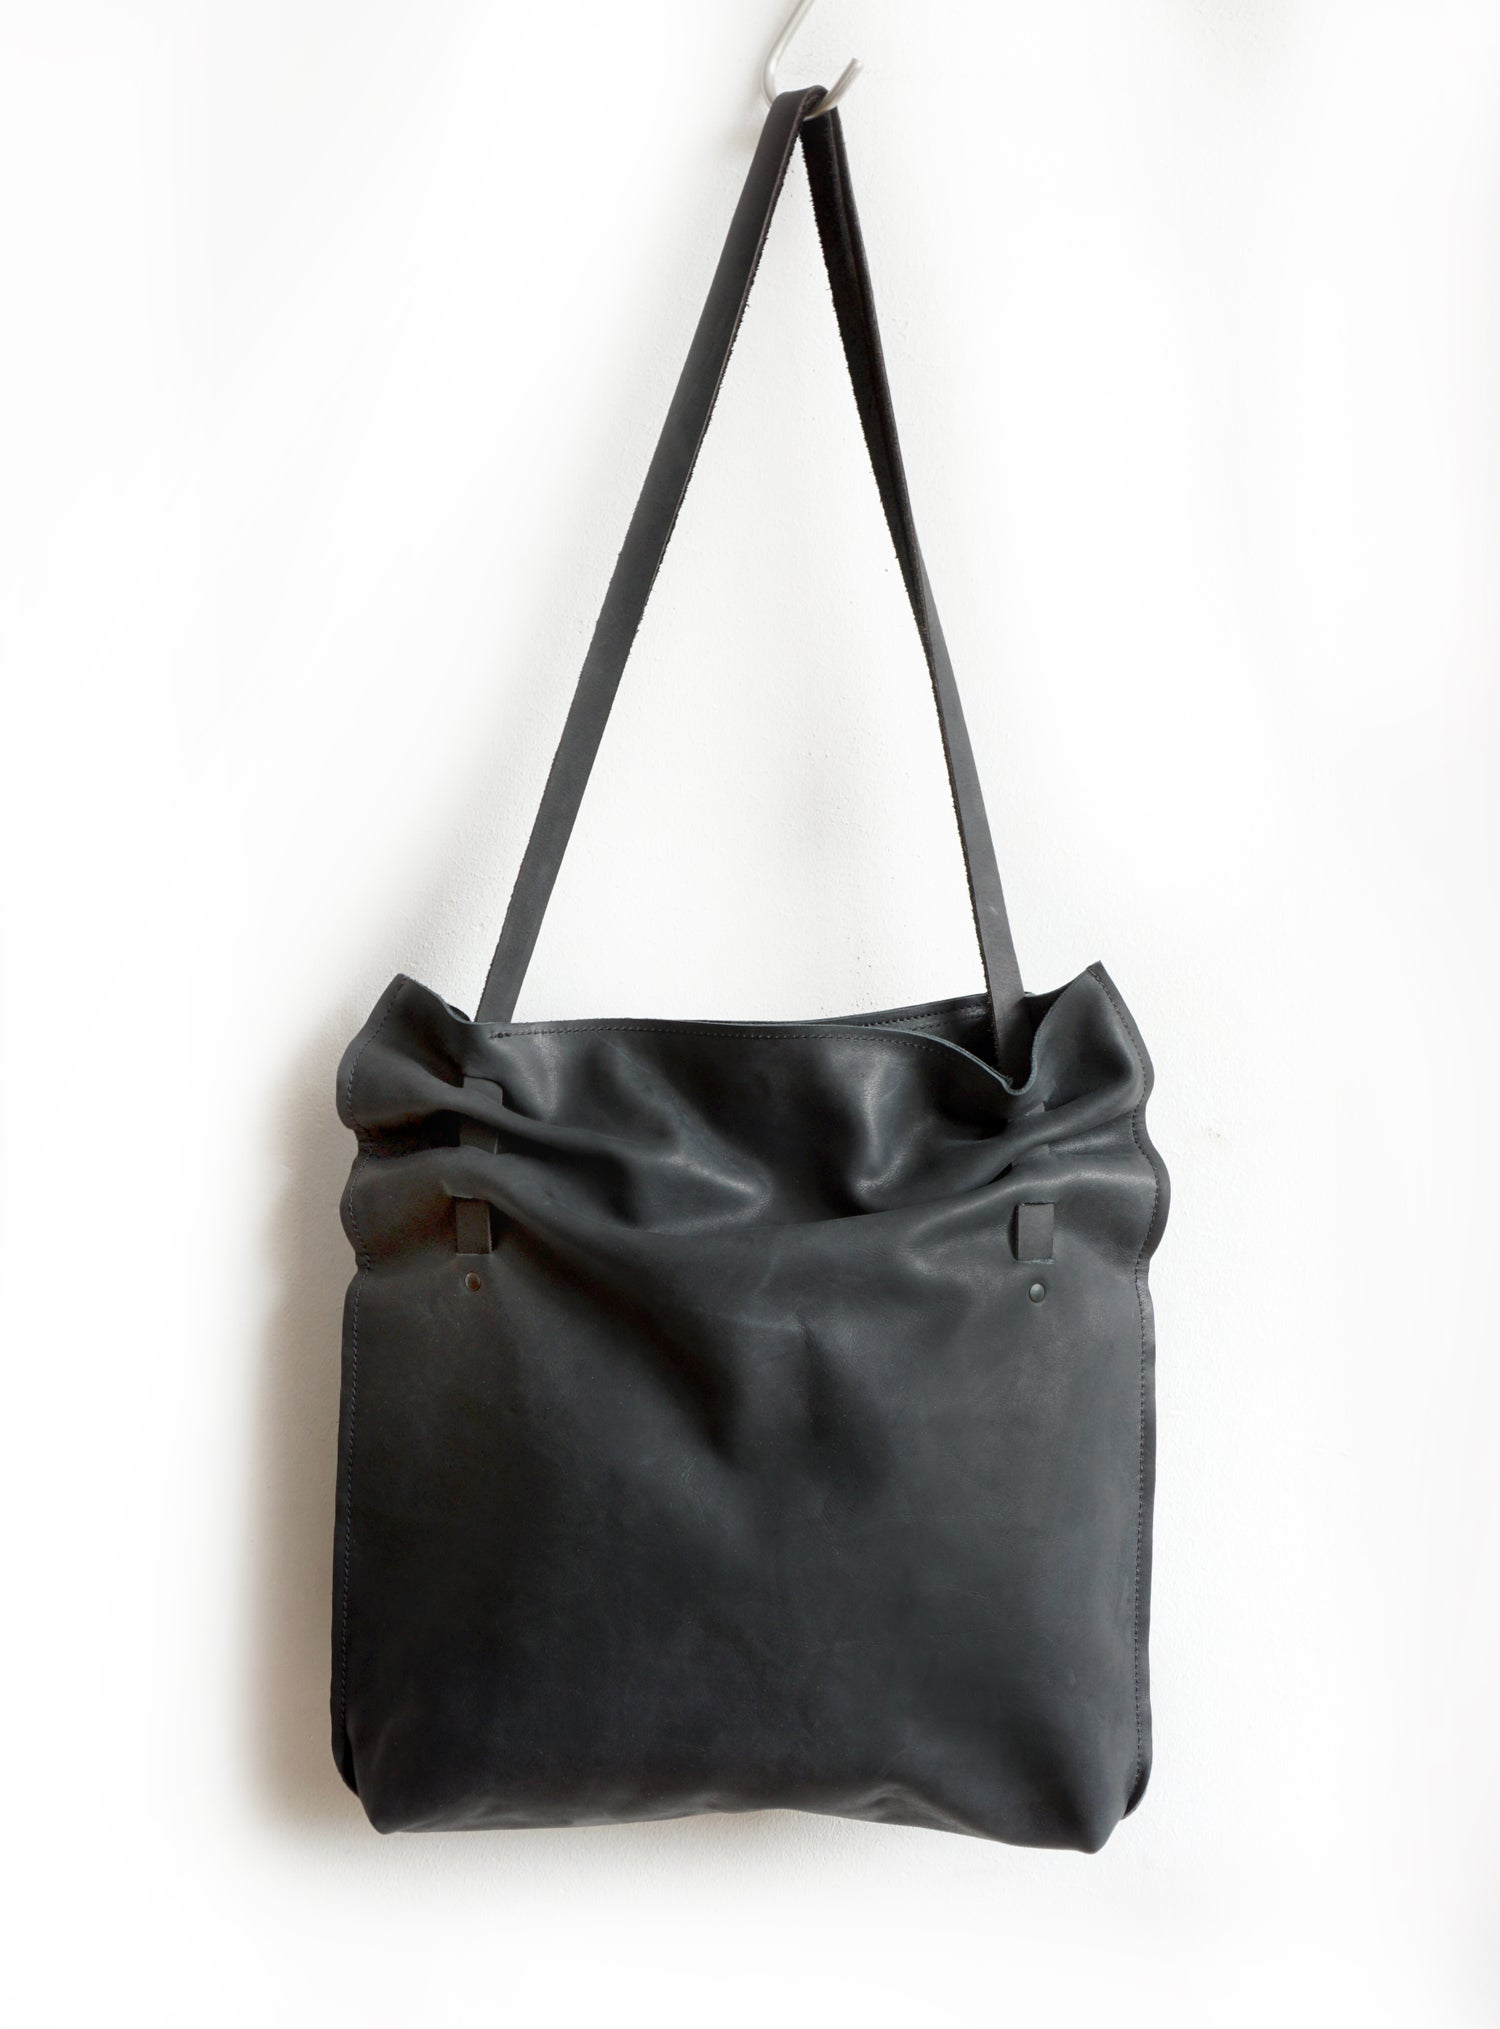 Image of Gathered Tote Bag, Black Leather Pleated Bag, Soft Leather Crunch Bag,